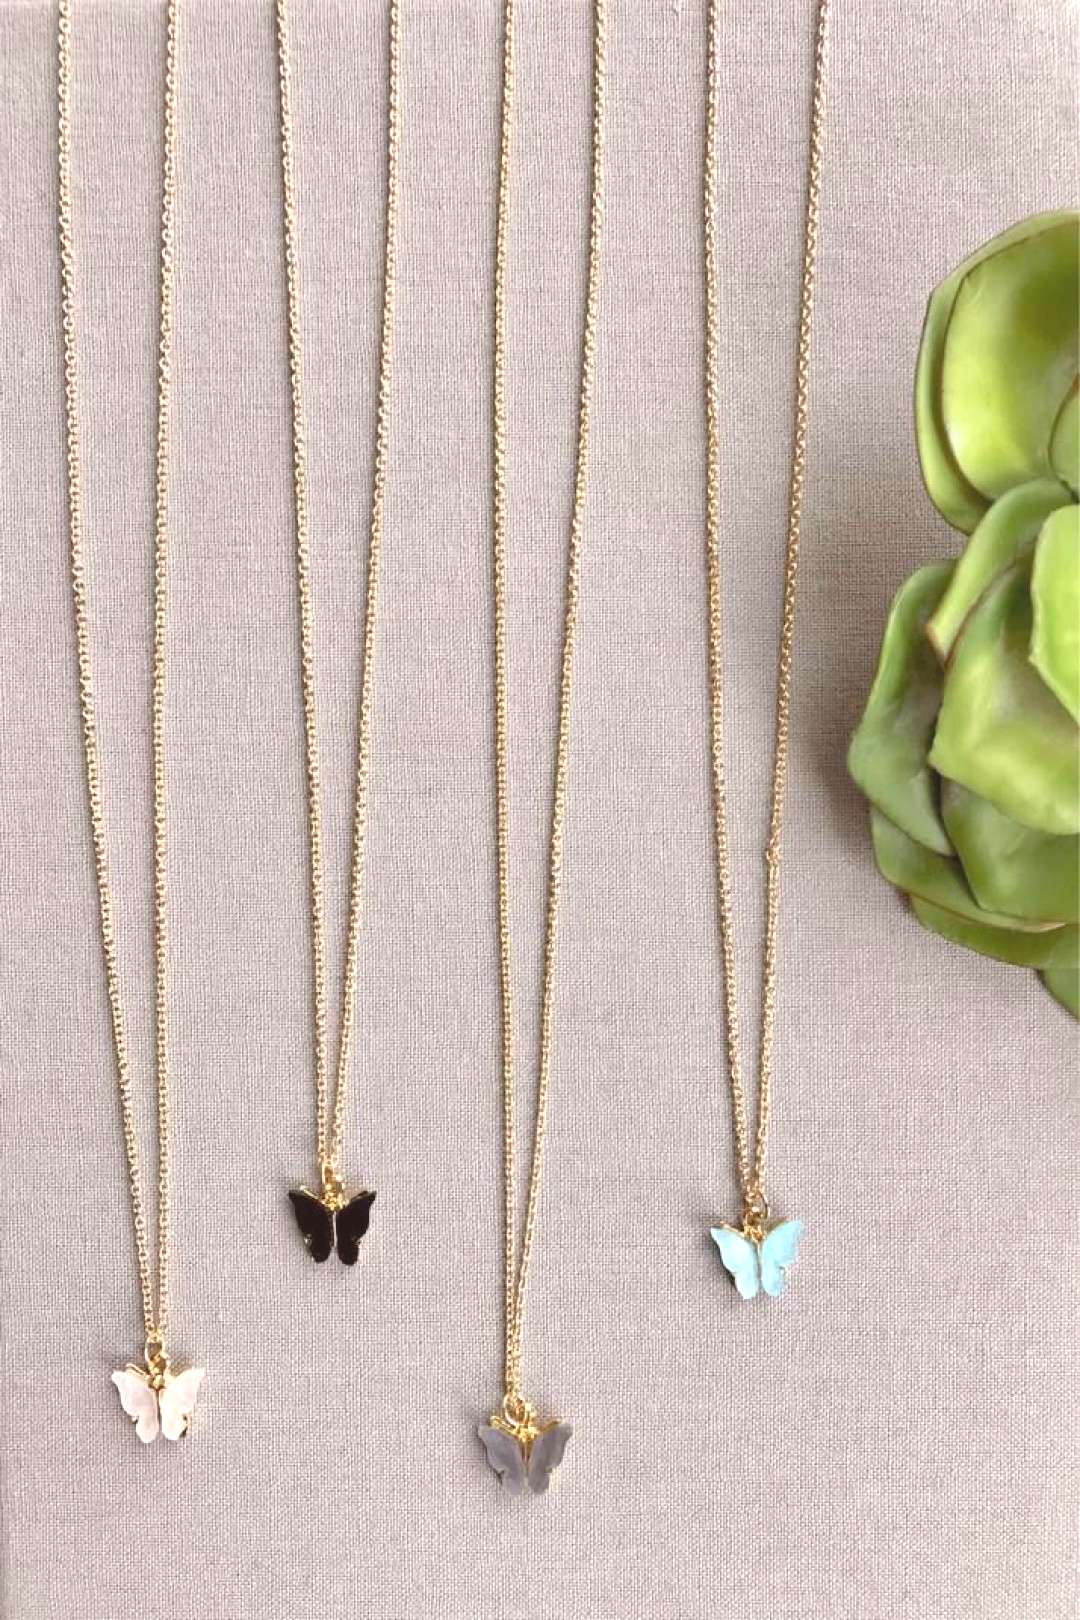 Dainty Butterfly Pendant Necklace - Gold Filled